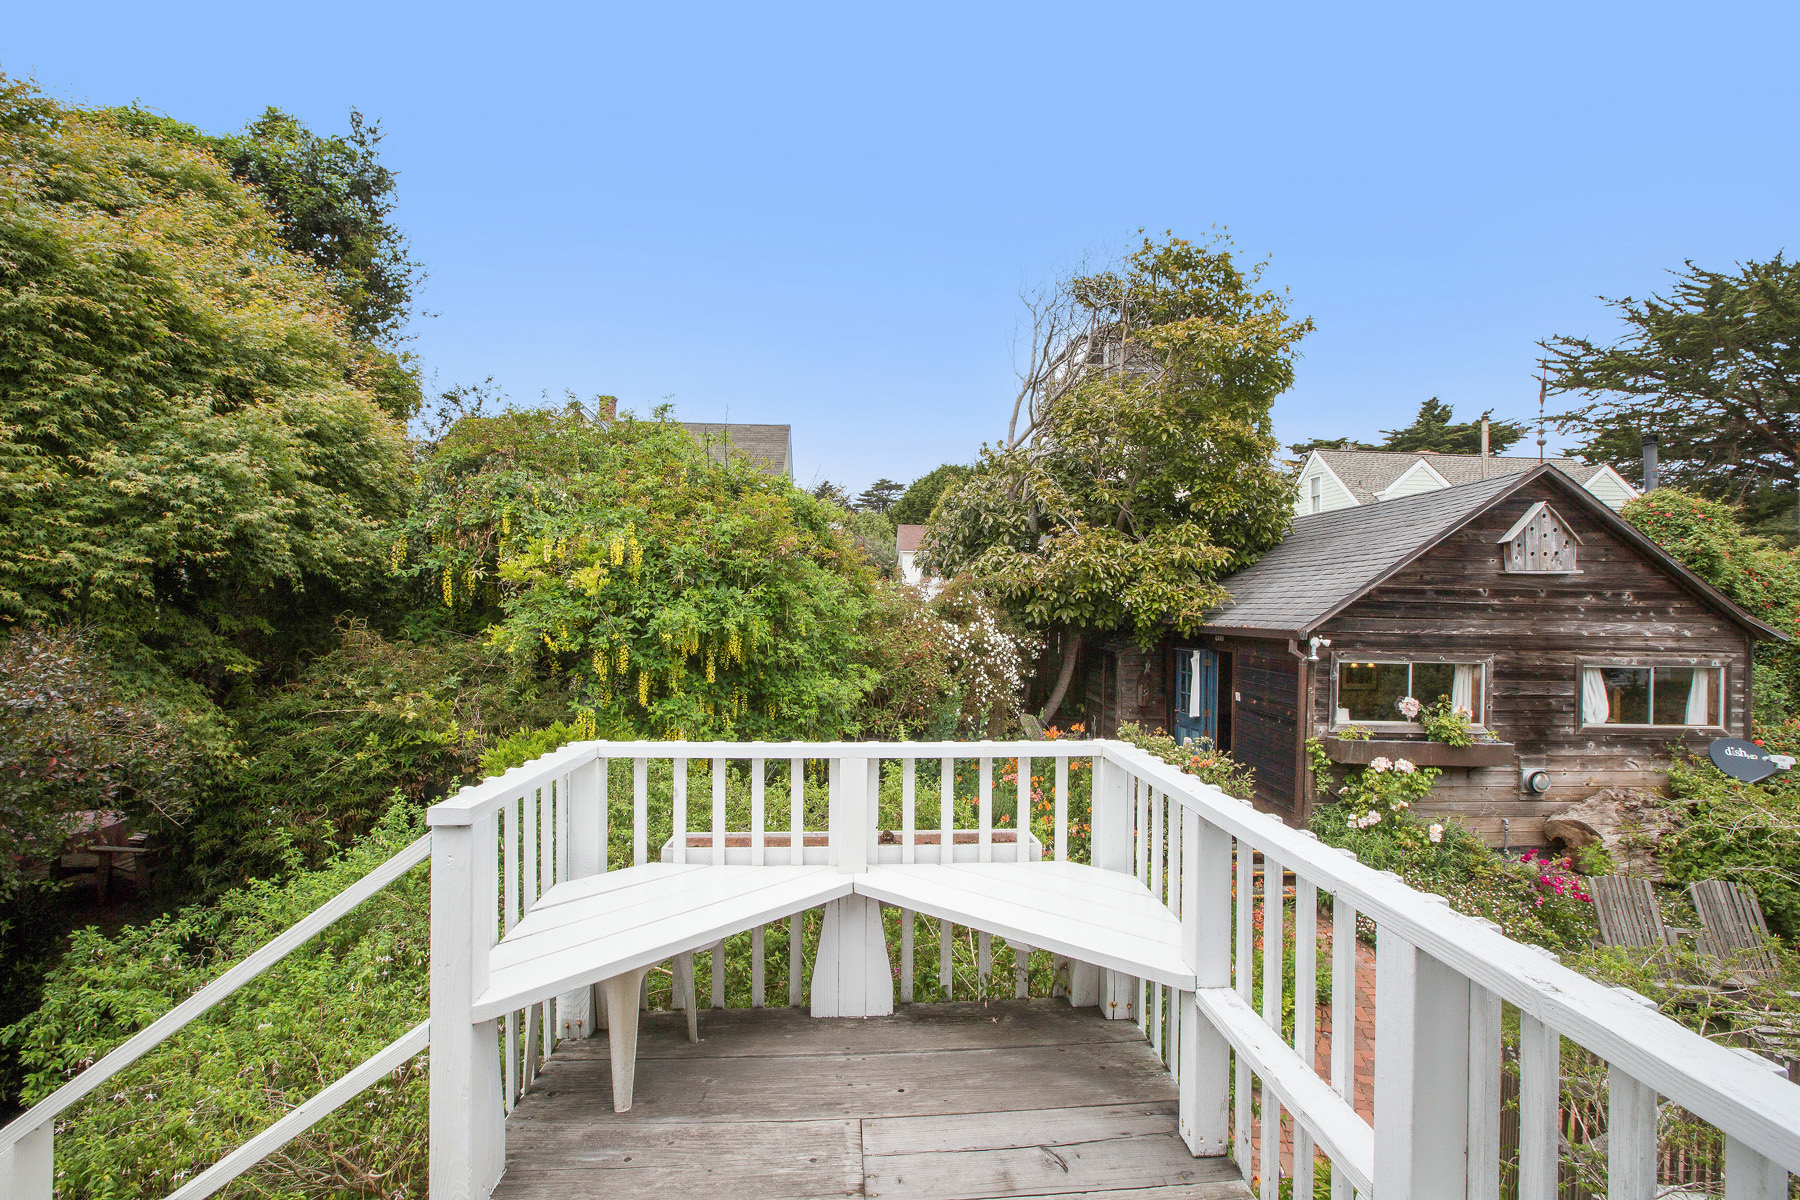 Additional photo for property listing at Sea Gull Inn 44960 Albion Street Mendocino, California 95460 United States